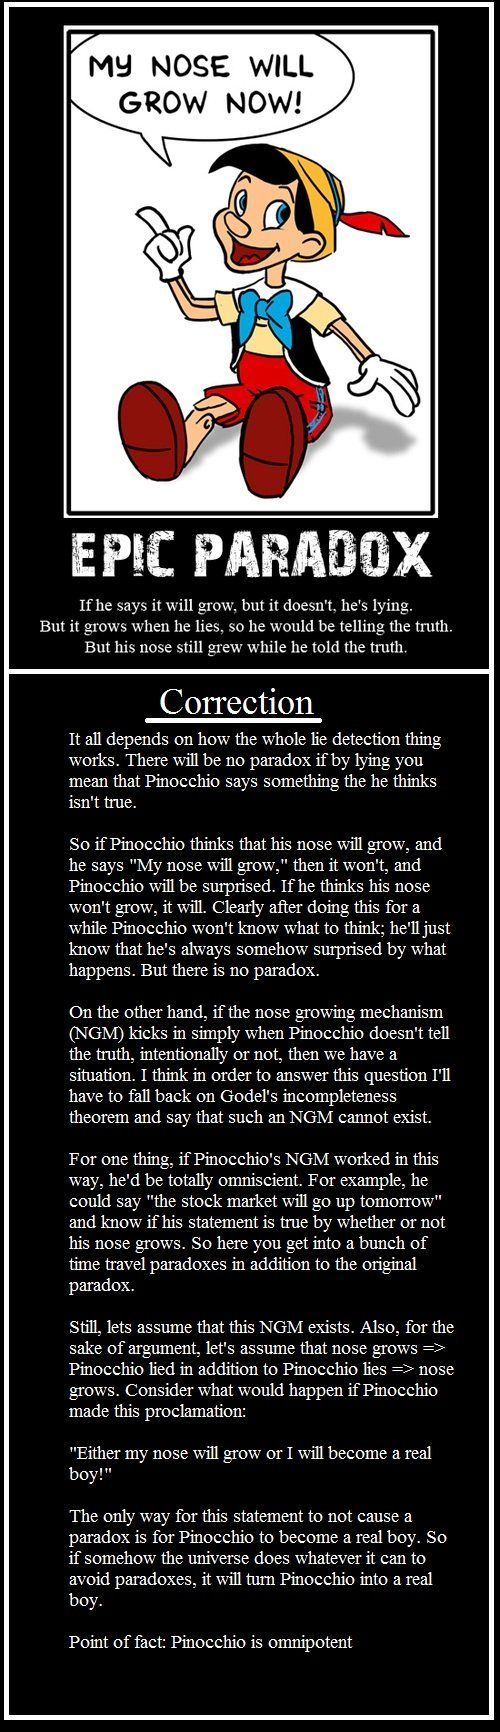 "Knowing Pinocchio's nose grows whenenver he tells a lie what would be to happen if he says out of the blue: ""My nose will grow now"""